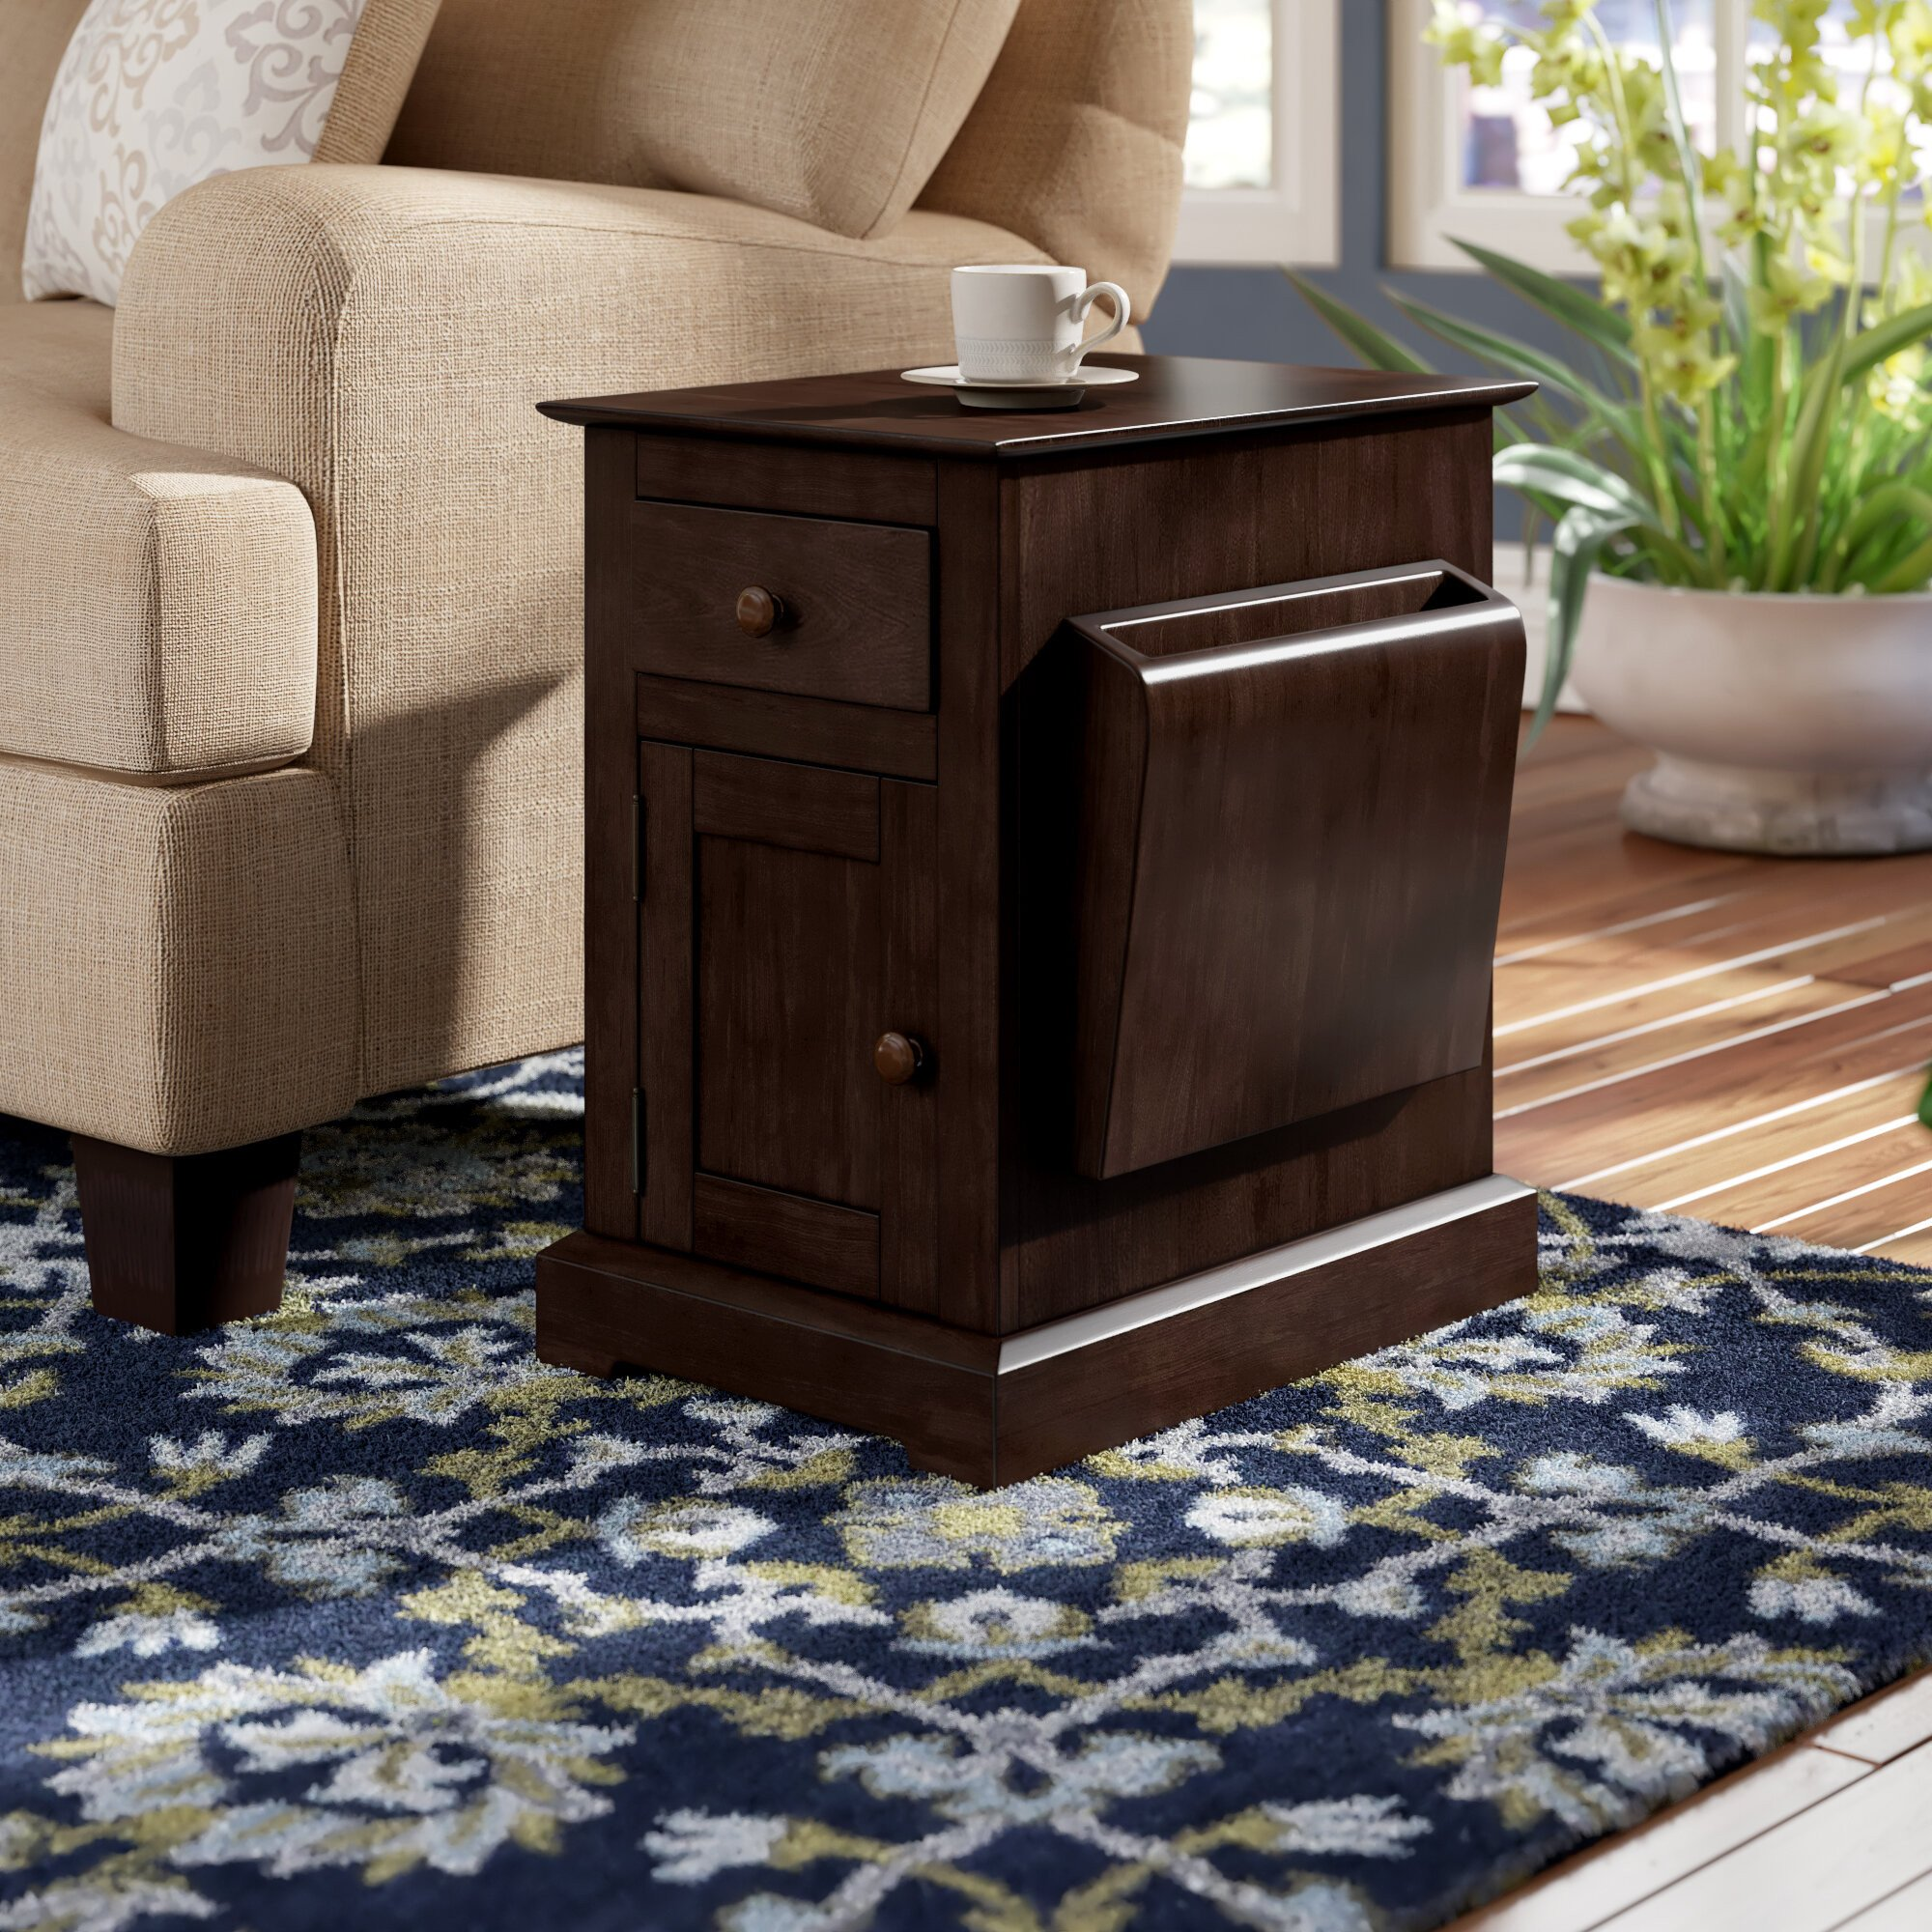 Used Lexington Bedroom Furniture Best Of Arlen End Table with Storage